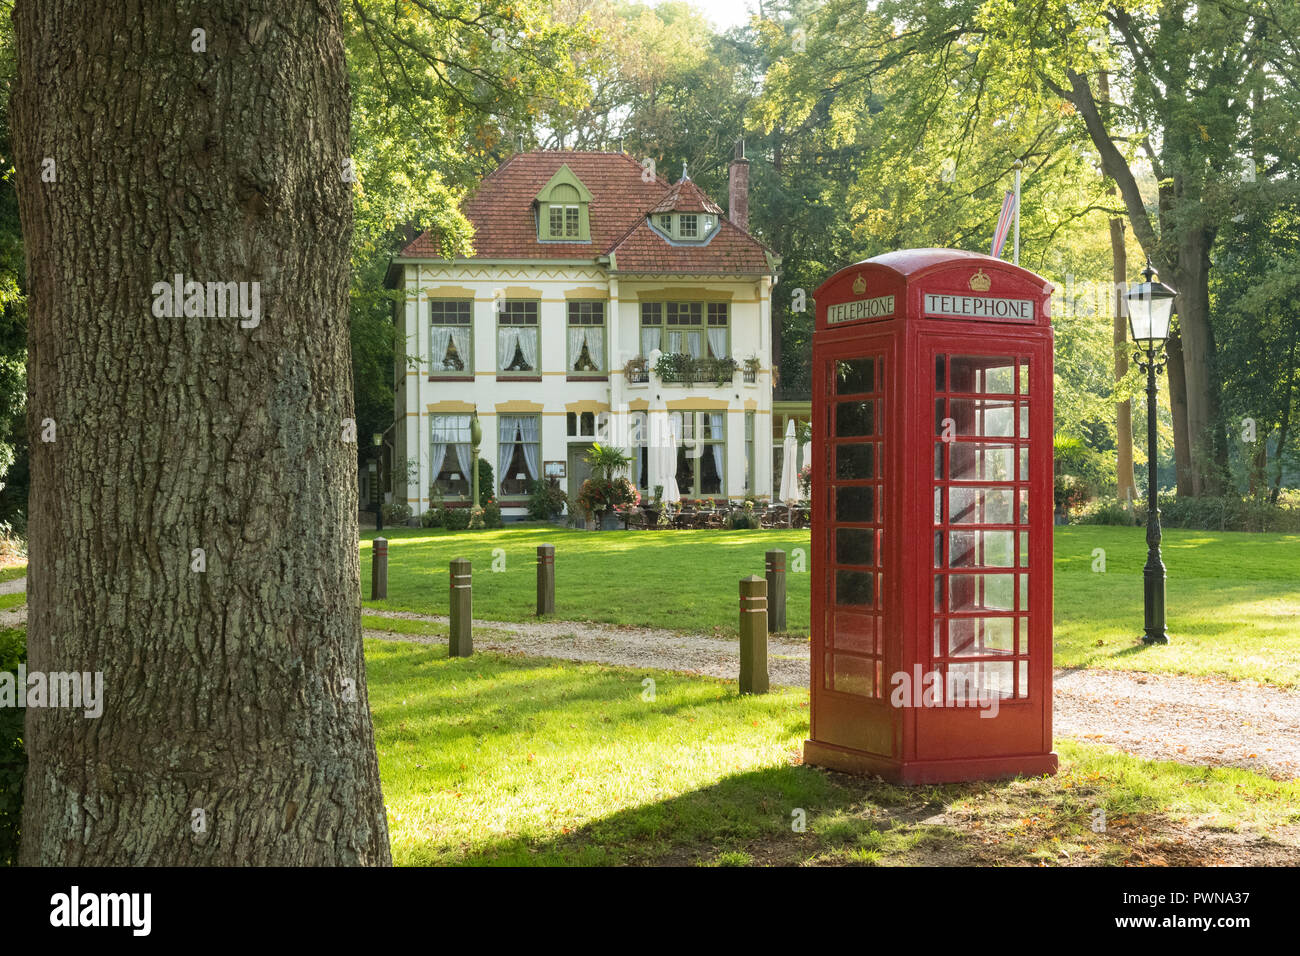 english tea room - 'Tea Time' - and red telephone box in Echten, Drenthe, Netherlands - Stock Image